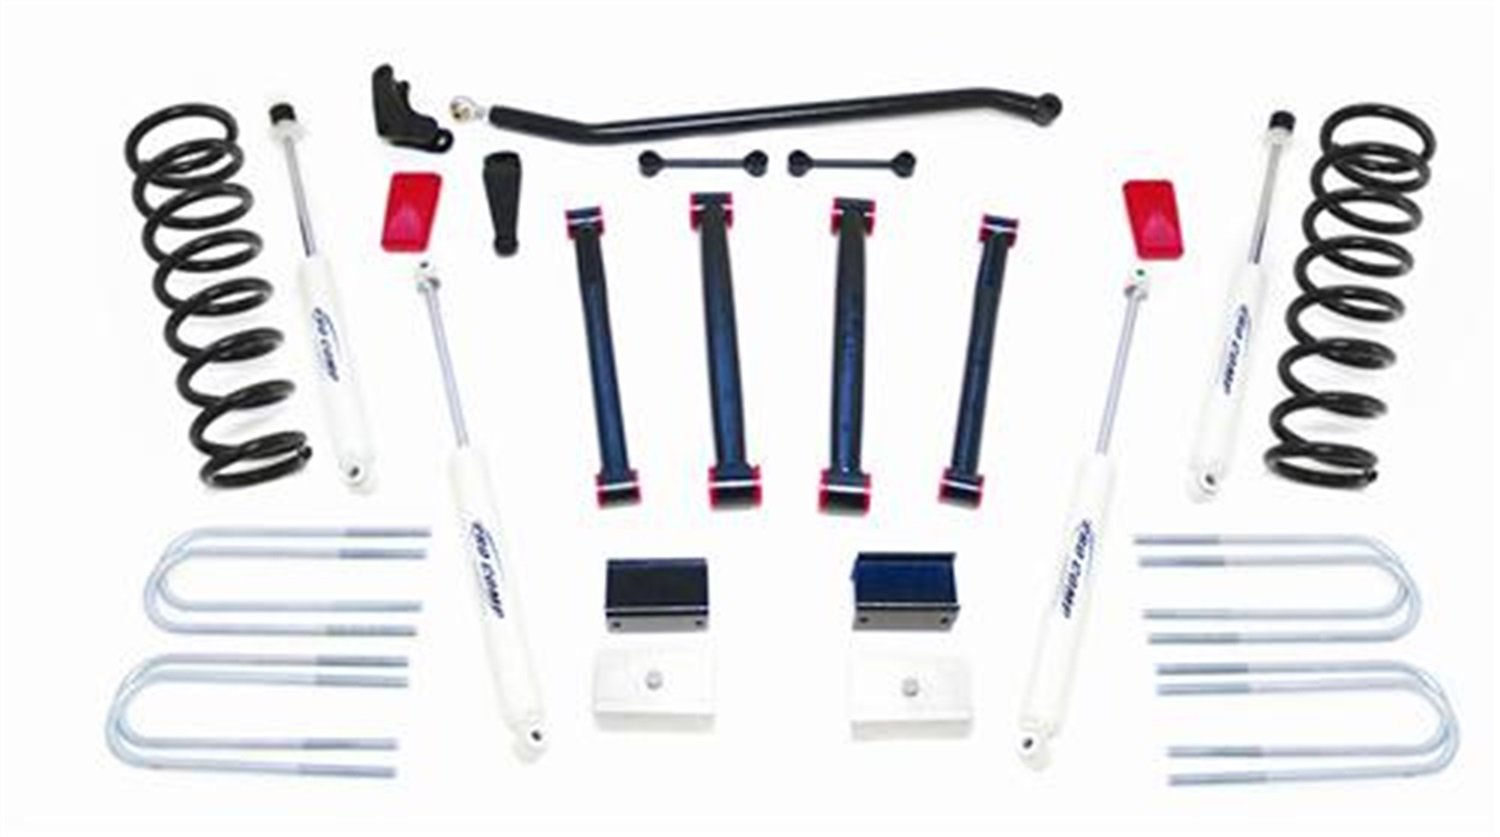 Block and ES9000 Shocks for RAM 2500 4WD 03-05 Pro Comp K2066B 6 Lift Kit with Coil